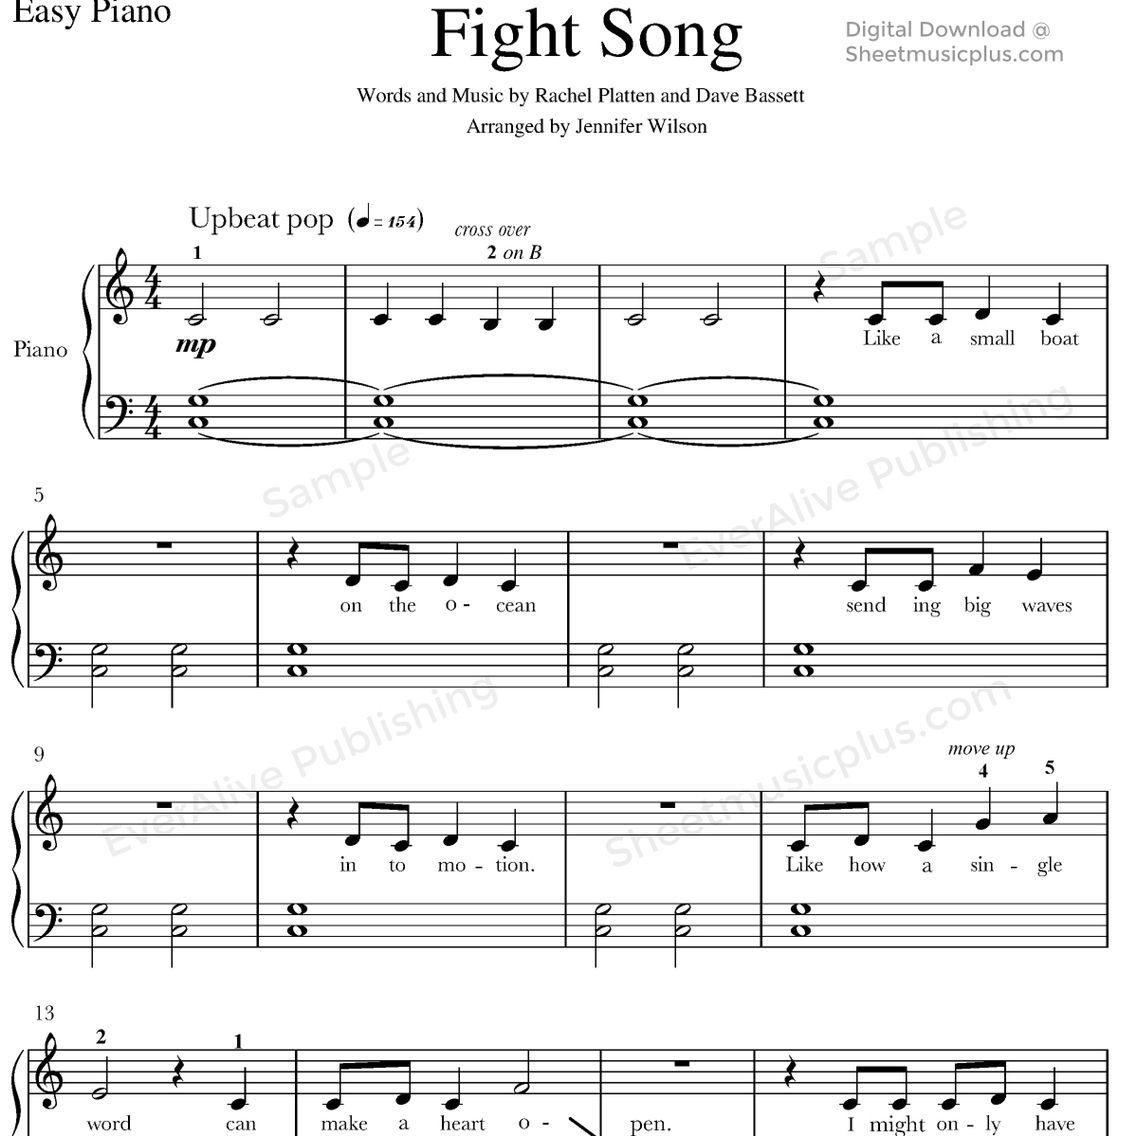 Pinbethany Trainor On Music In 2019 | Pinterest | Easy Piano - Free Printable Sheet Music For Piano Beginners Popular Songs